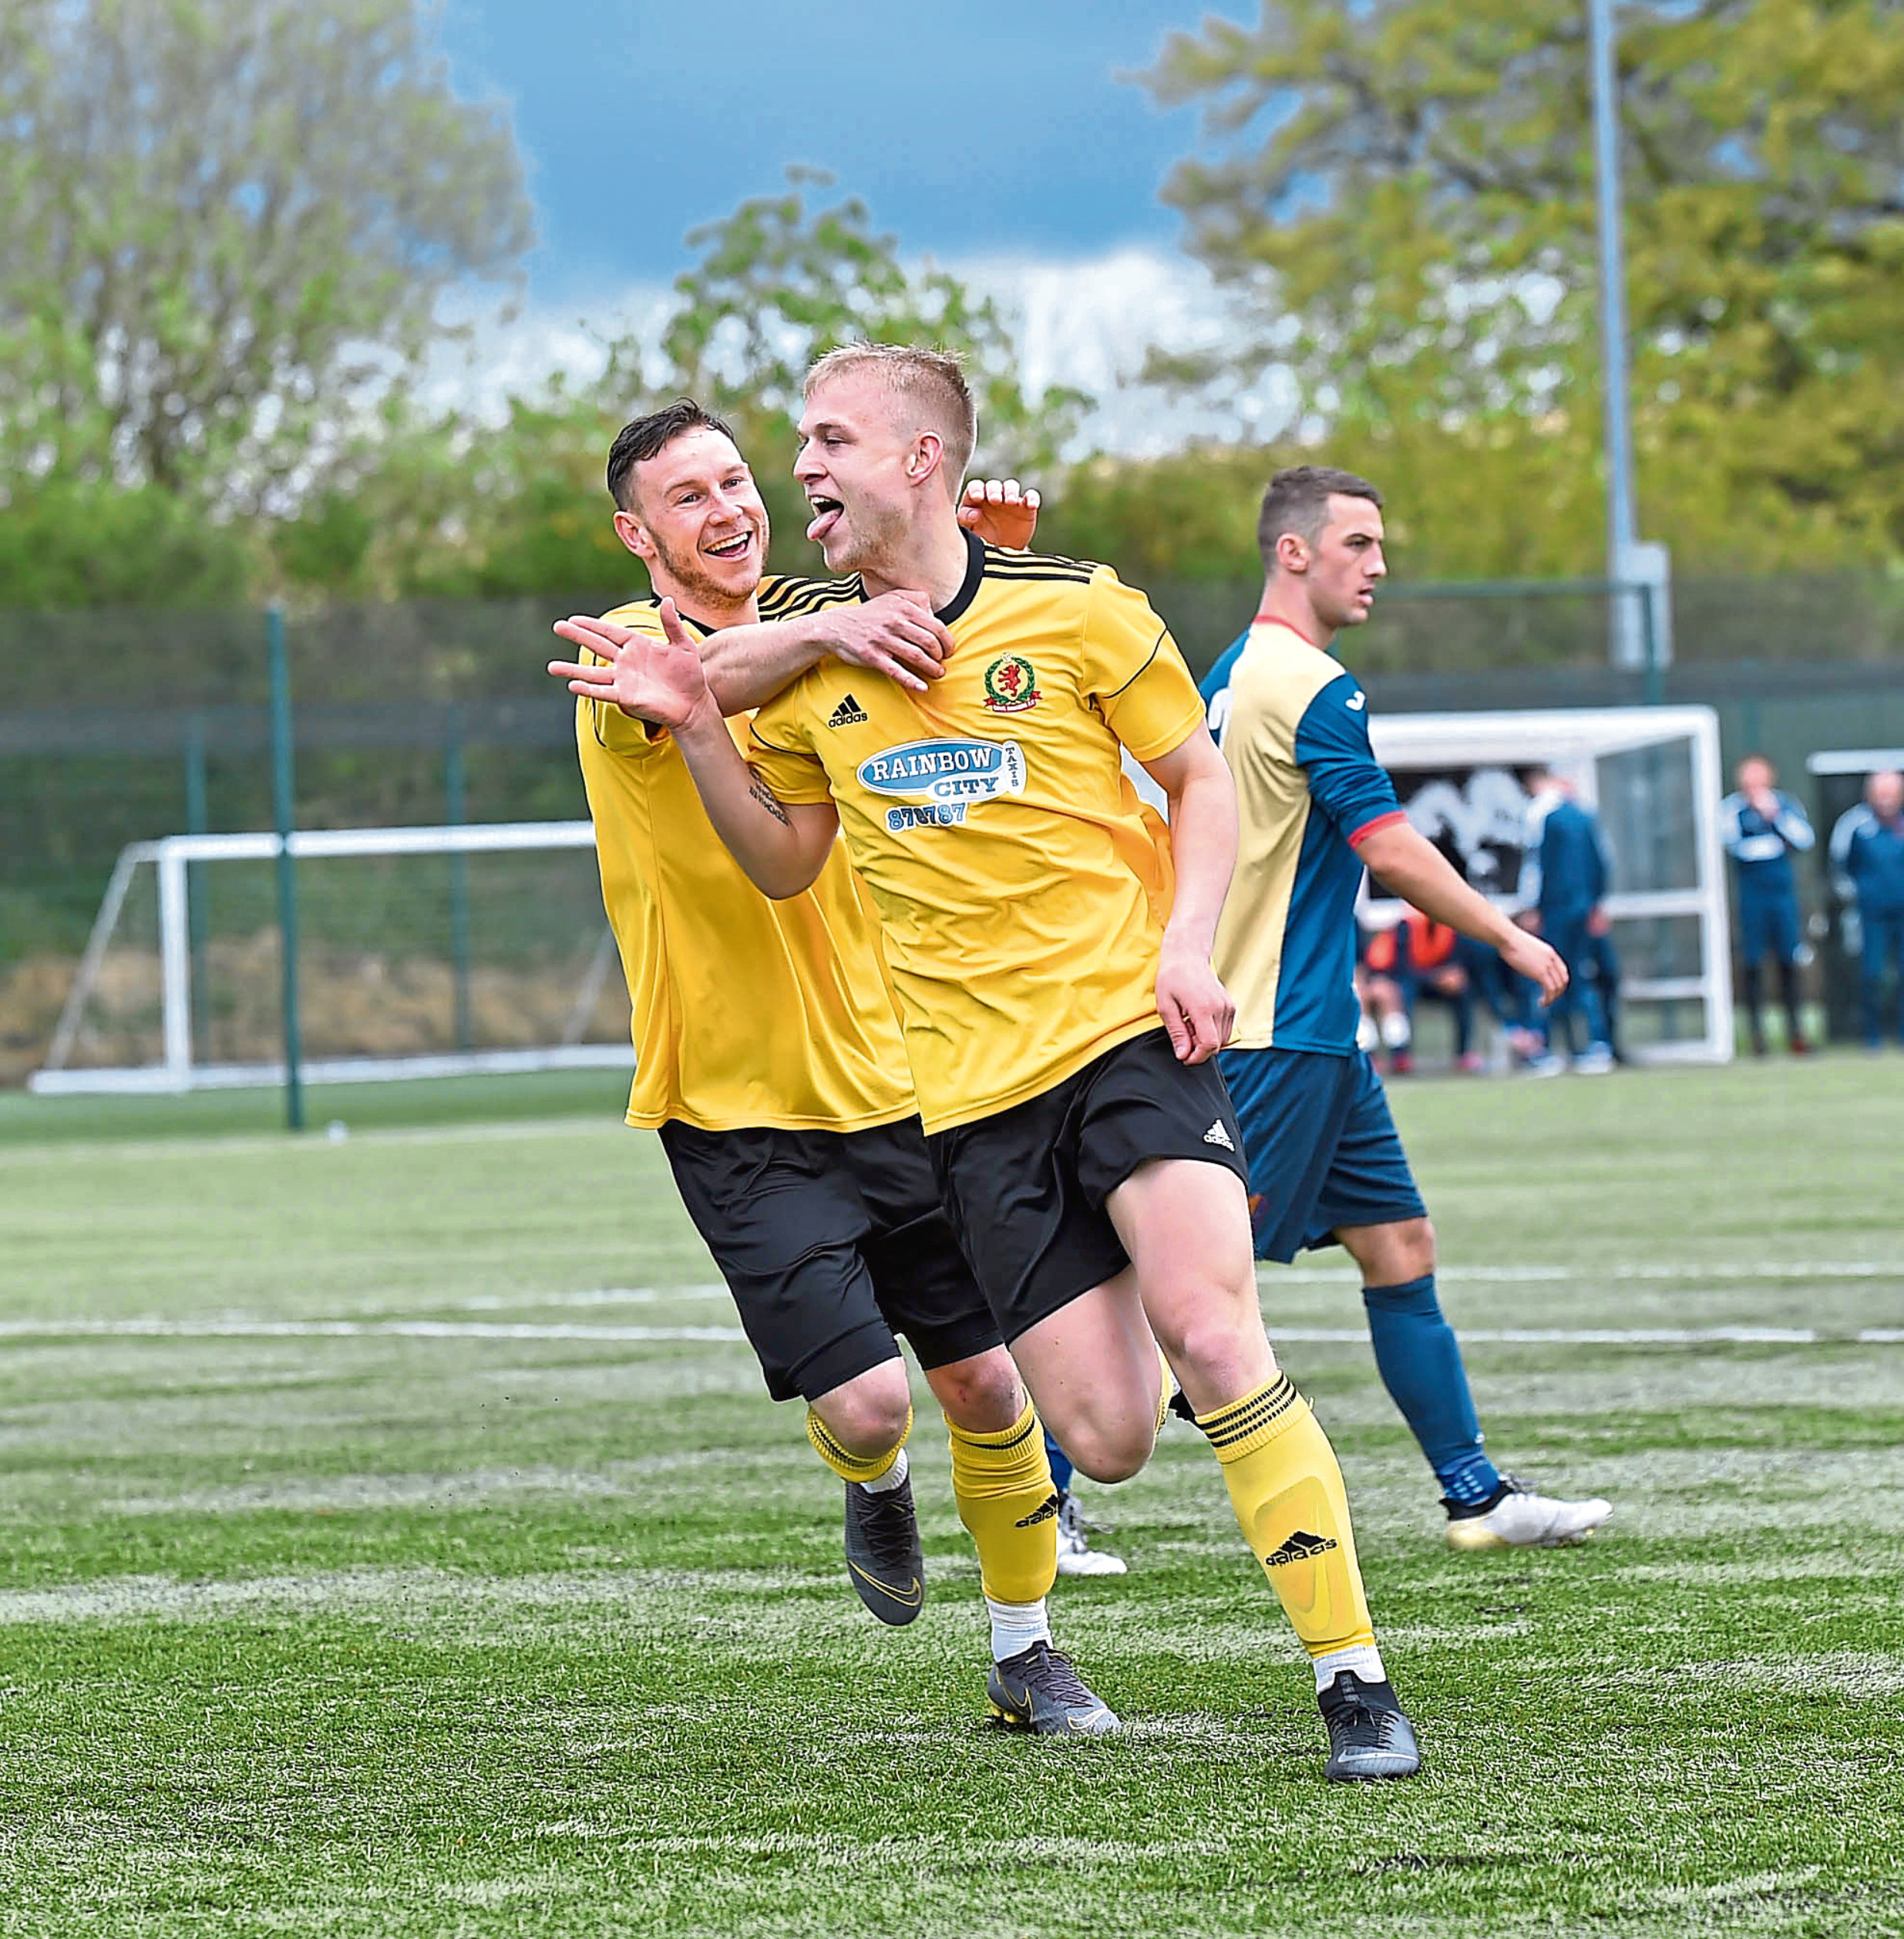 Harry Milne (right) races away to celebrate after scoring Cove's first goal against East KIlbride.